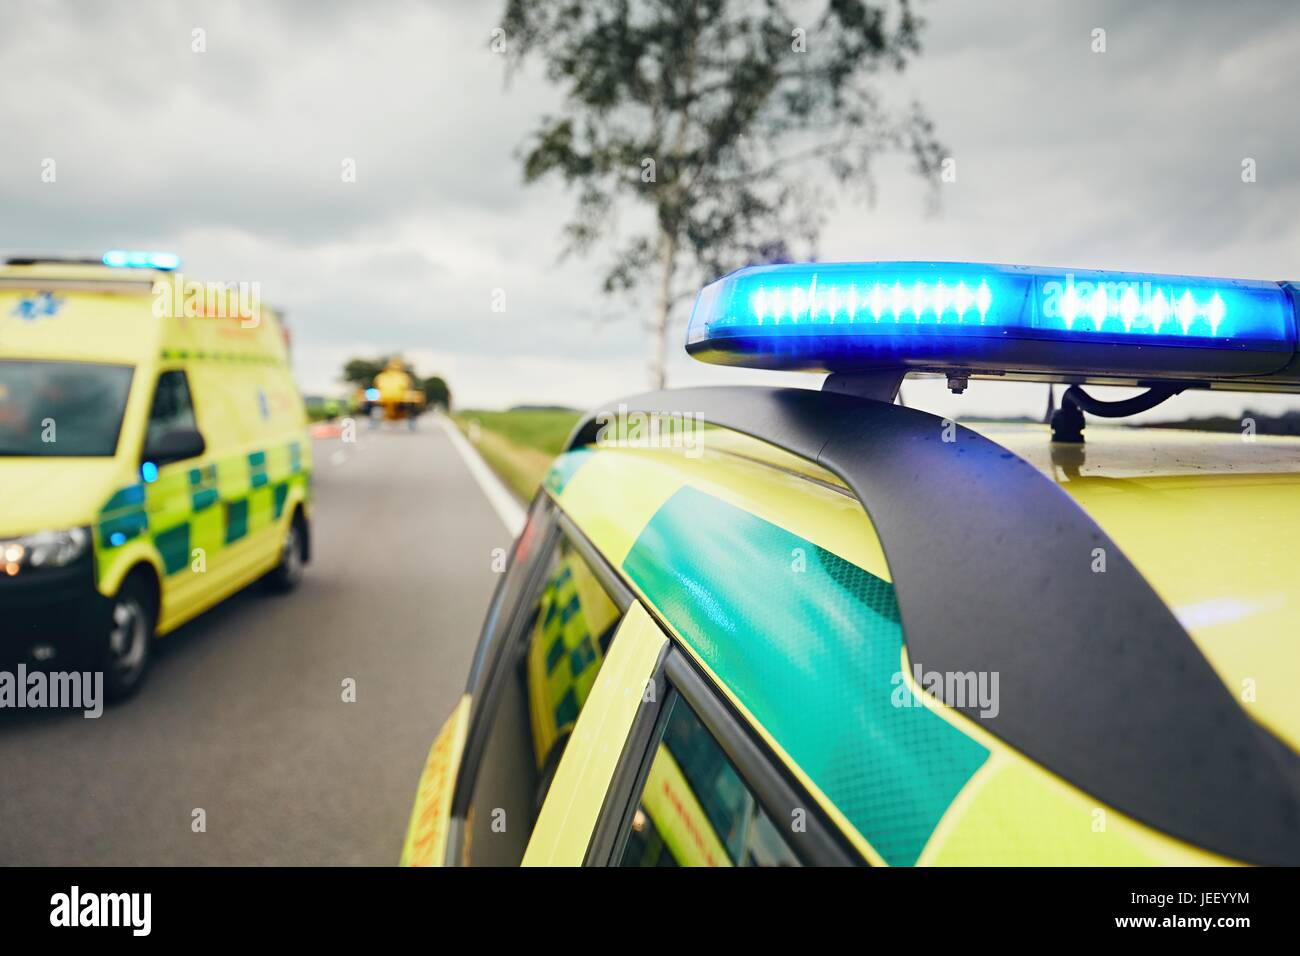 Ambulance cars. Teams of the Emergency medical service are responding to an traffic accident in bad weather. - Stock Image